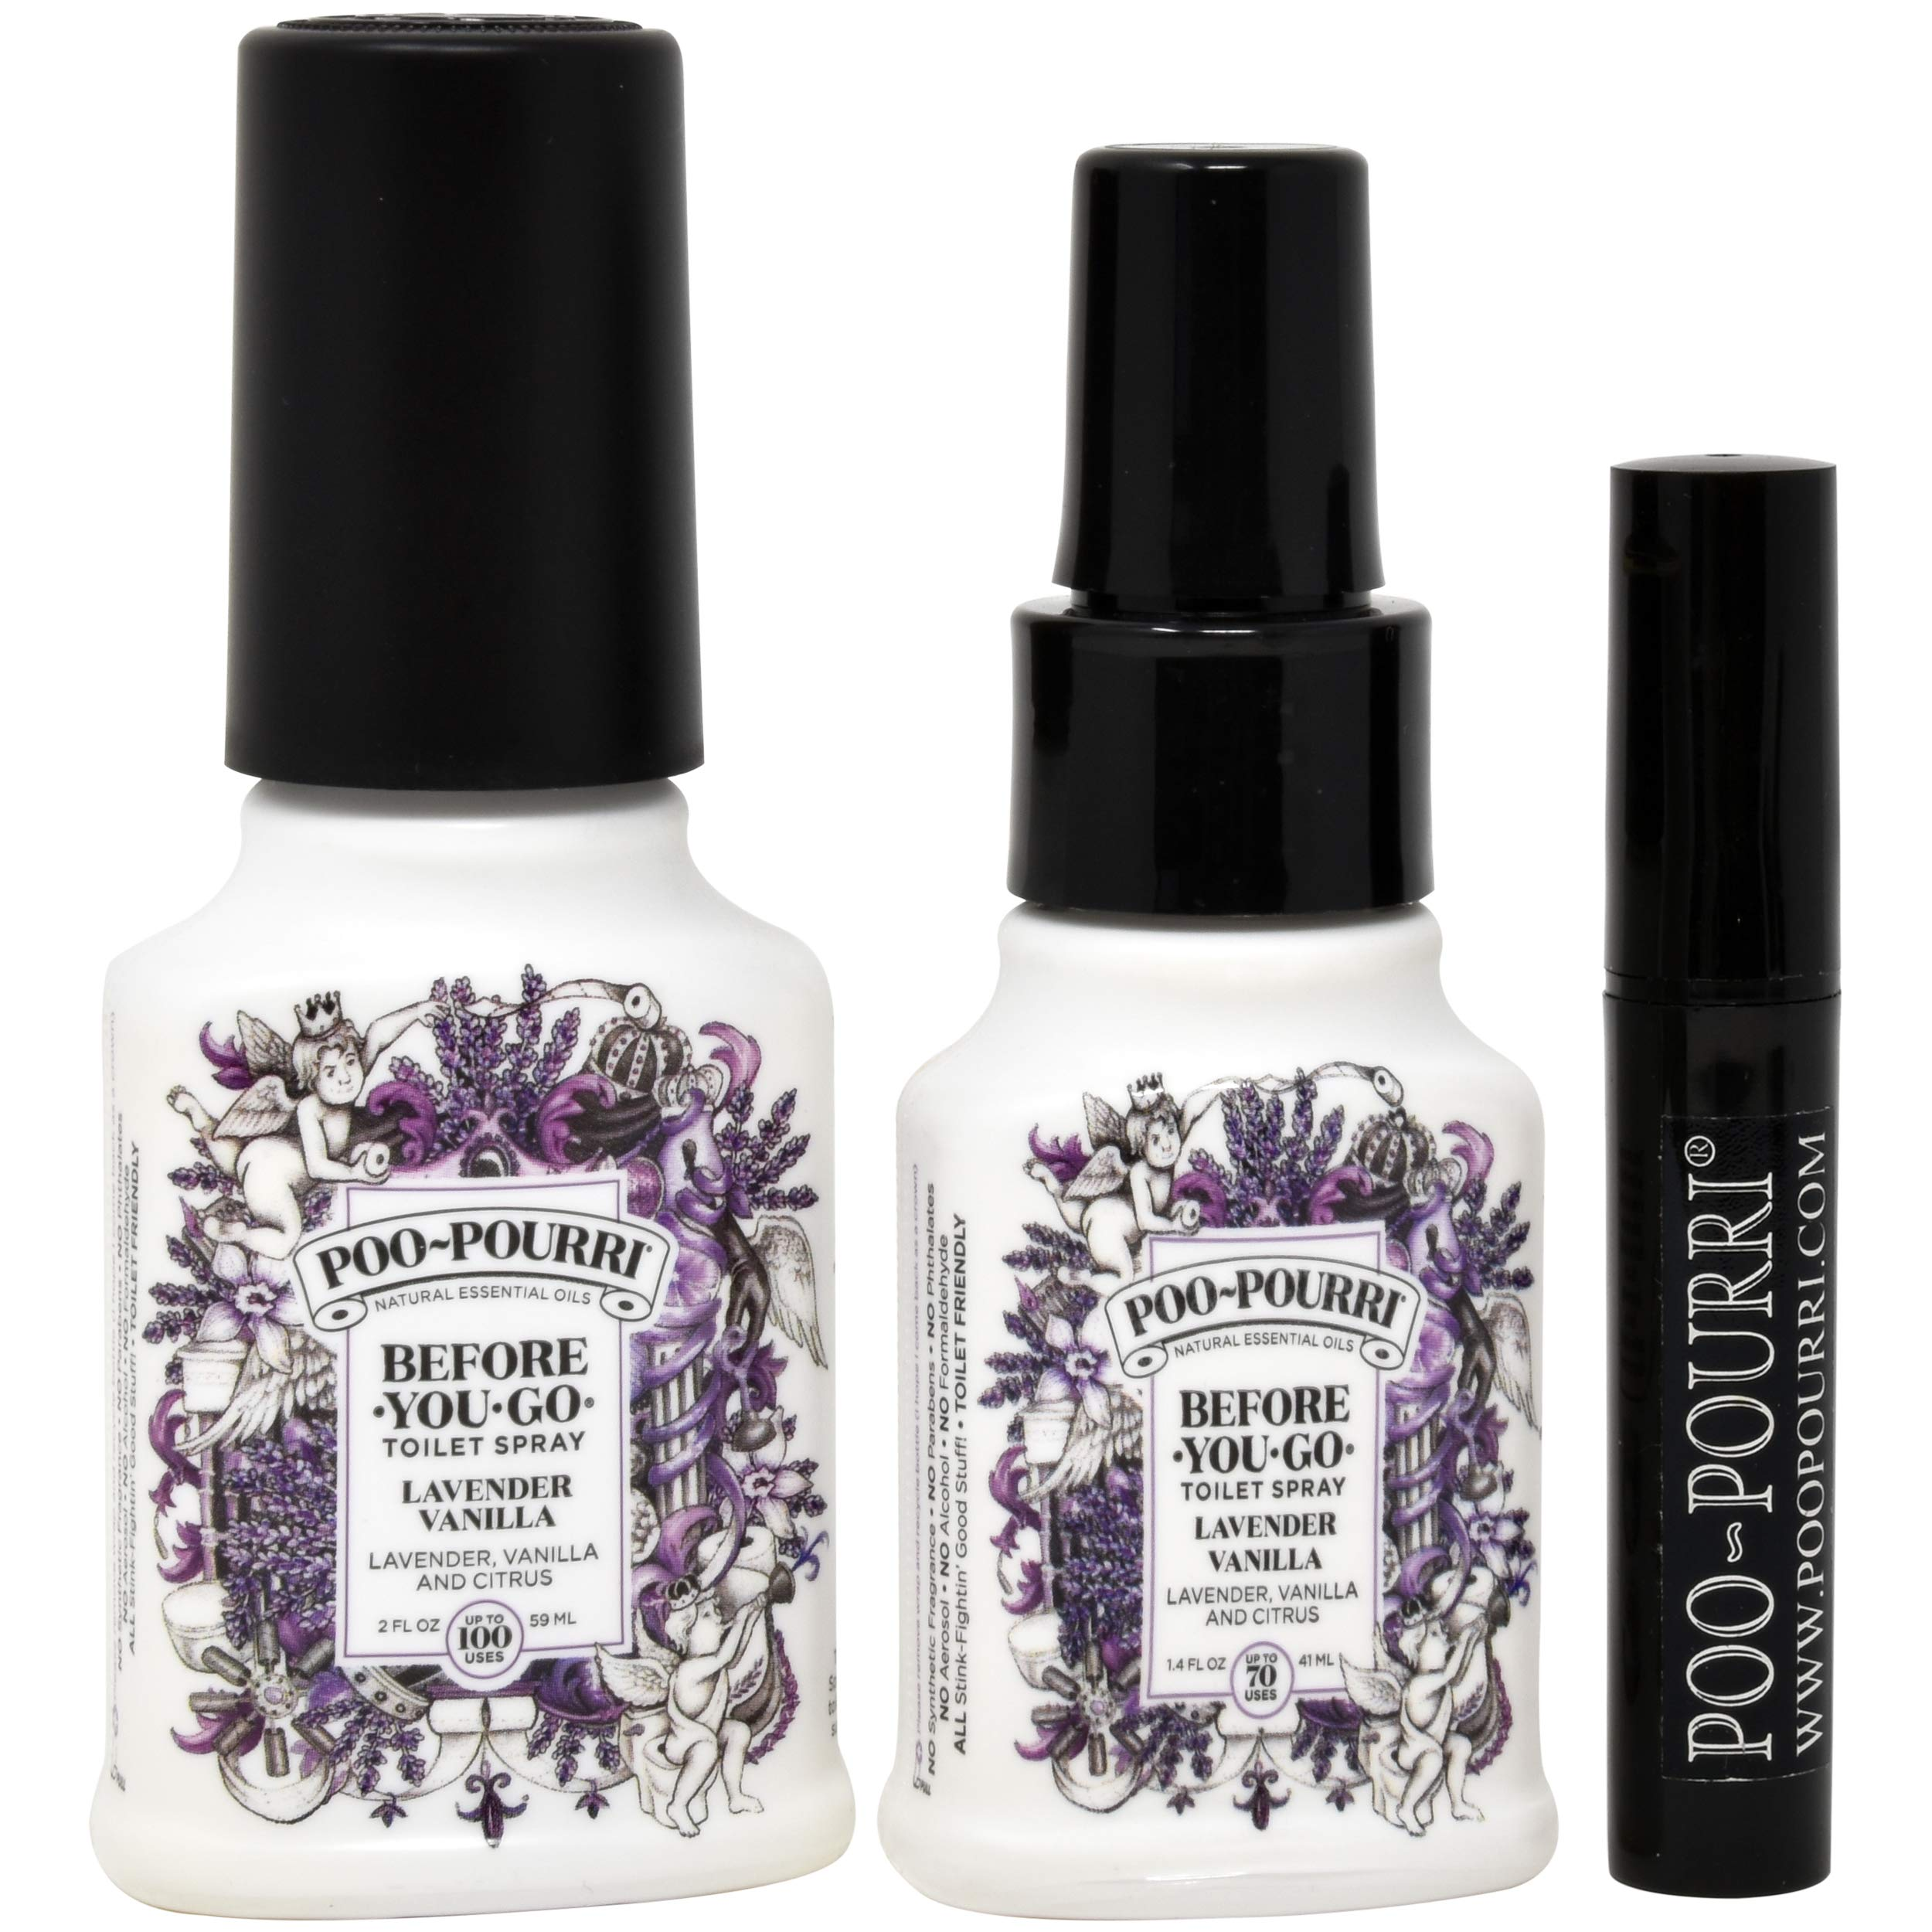 Poo-Pourri Lavender Vanilla 1.4-Ounce Bottle, Lavender Vanilla 2-Ounce Bottle and Travel Size Disposable Spritzer